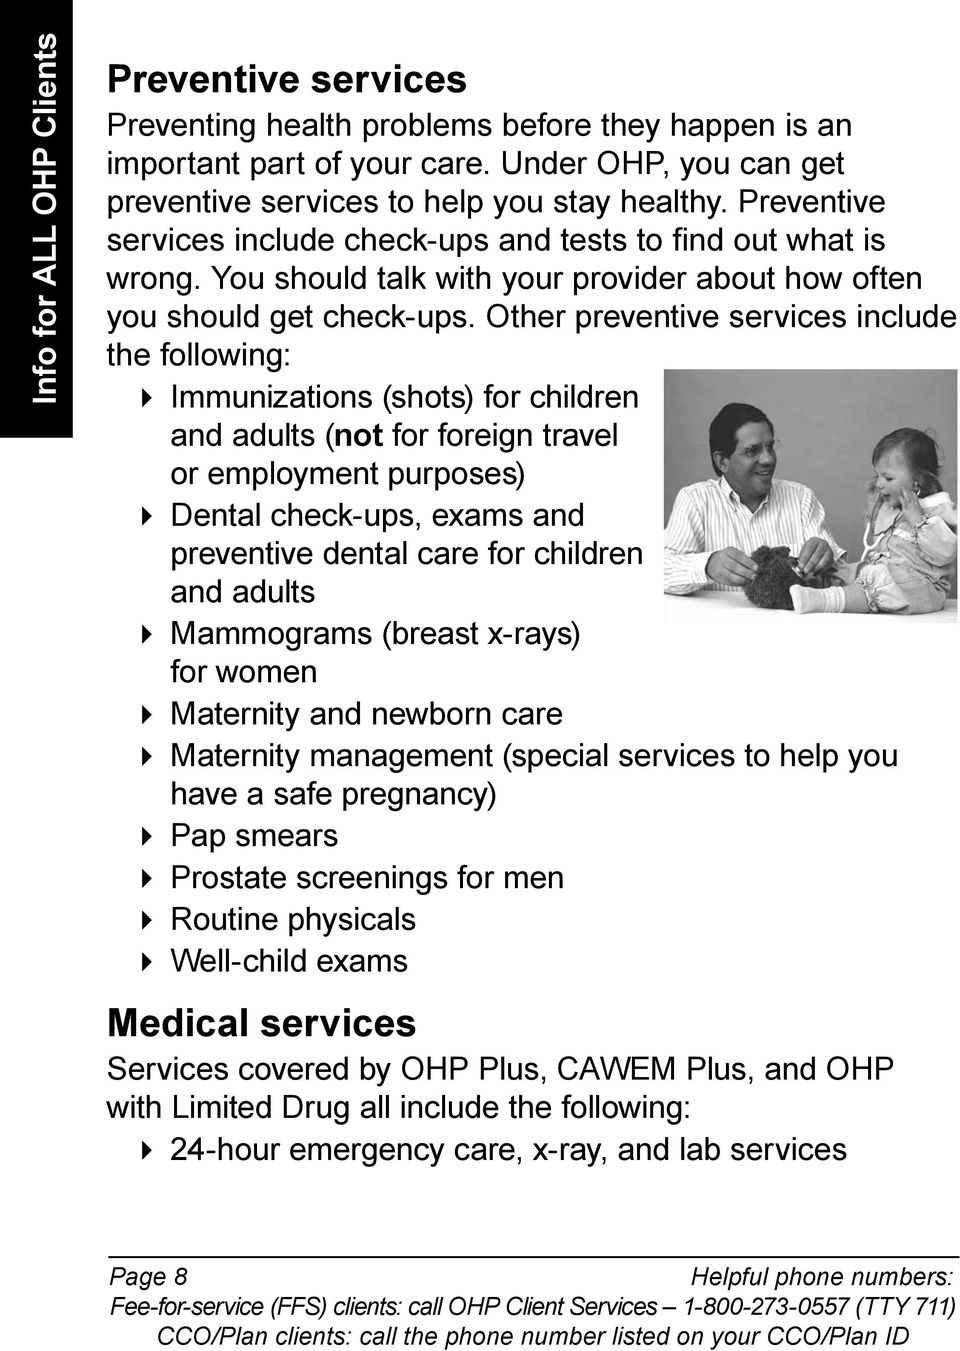 Other preventive services include the following: Immunizations (shots) for children and adults (not for foreign travel or employment purposes) Dental check-ups, exams and preventive dental care for